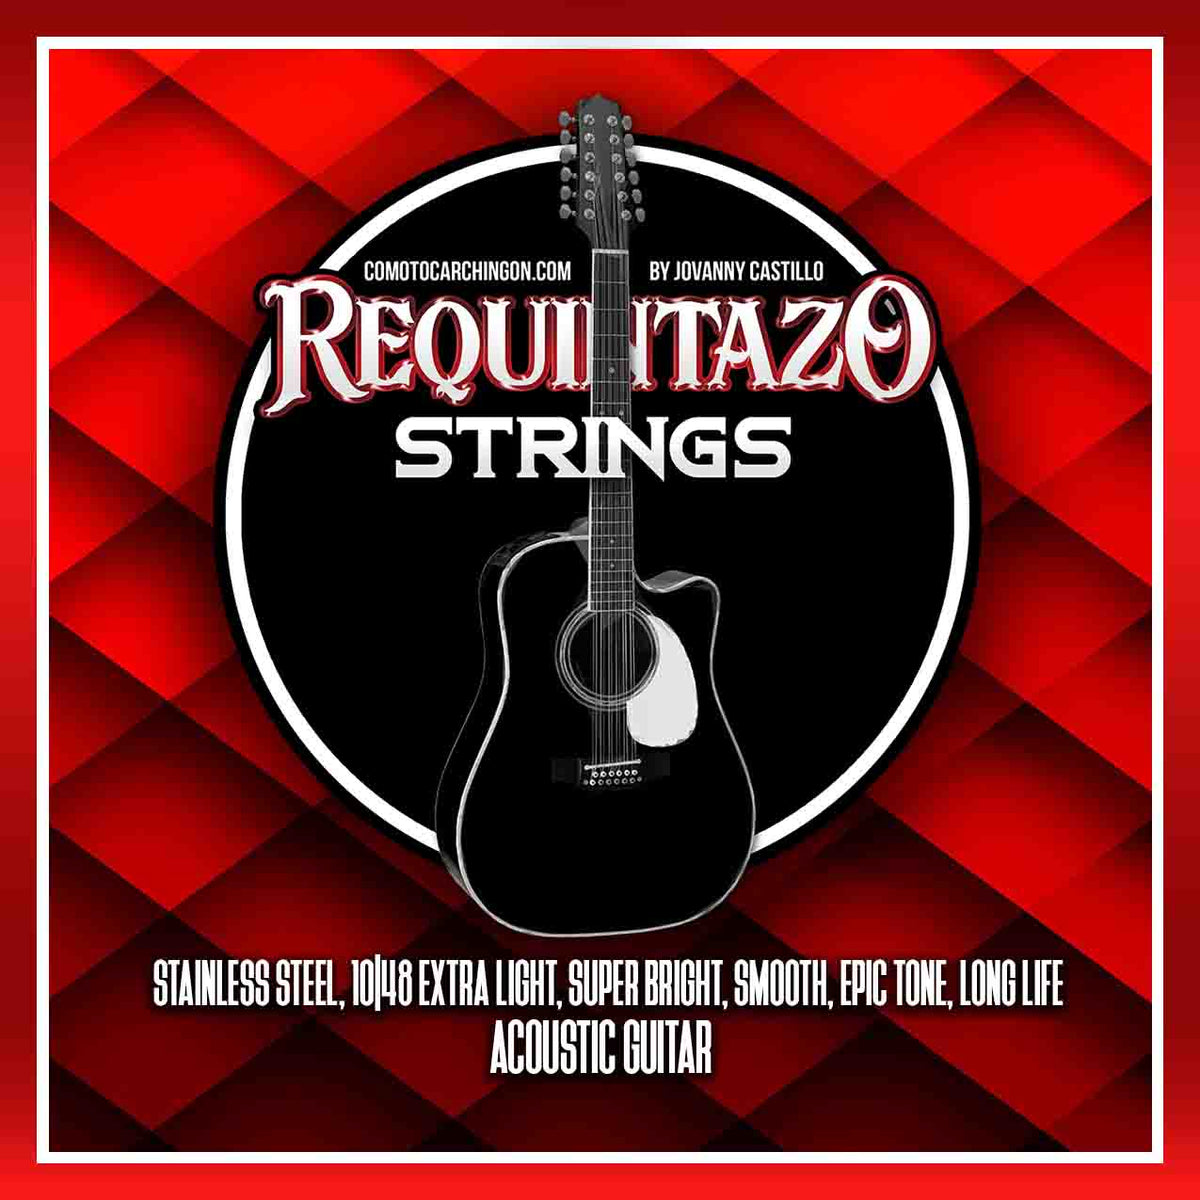 Requintazo Bundle (2 Sets + Picks) for 6 String Guitars Only! - Como Tocar Chingon